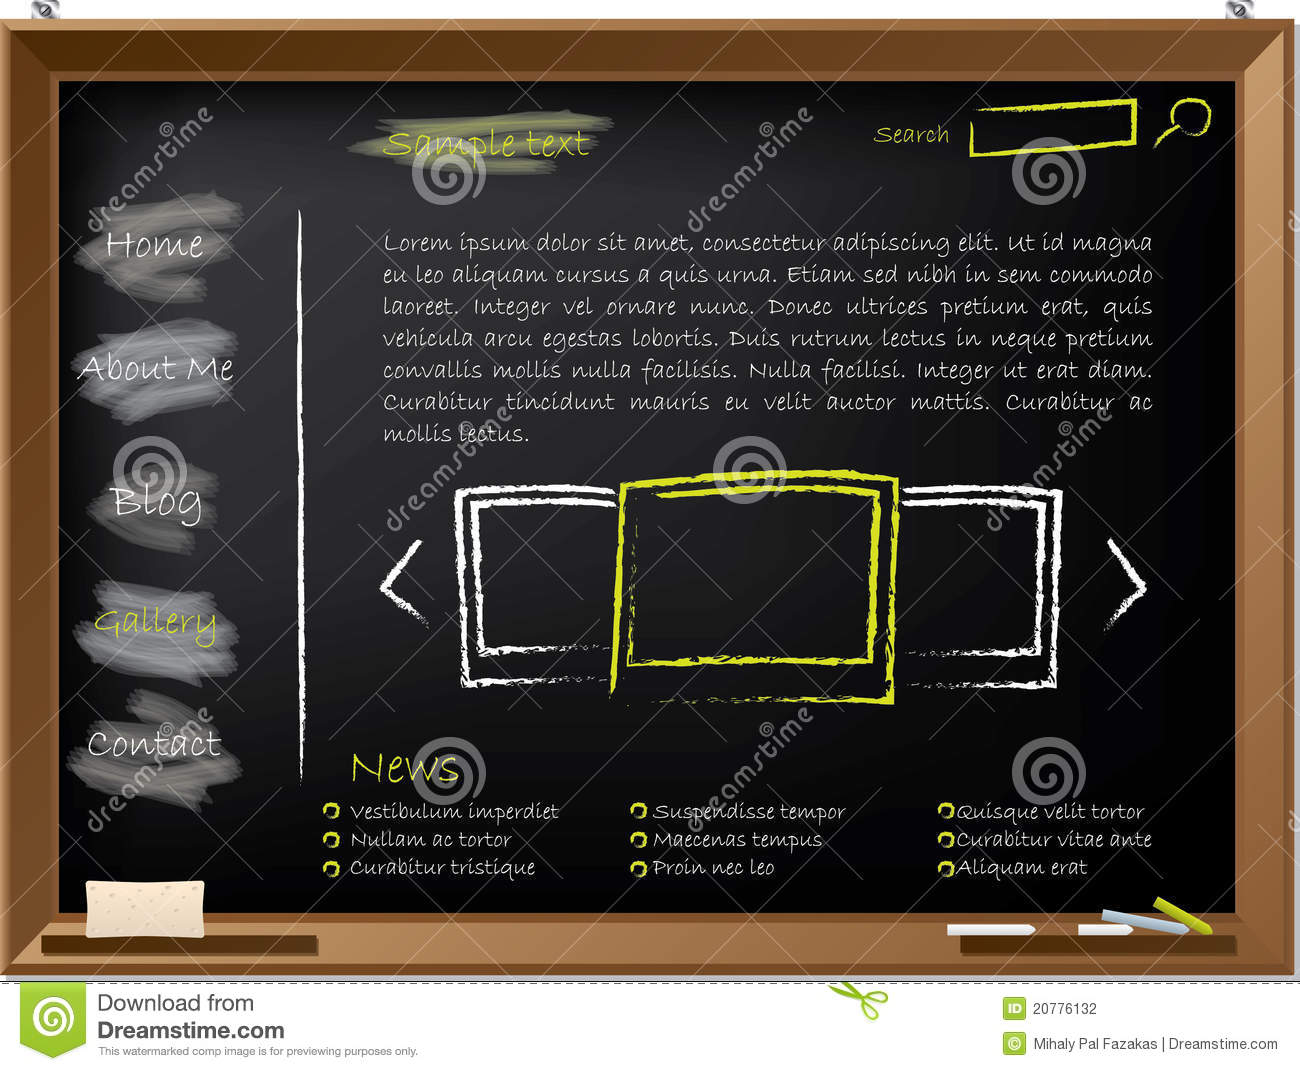 Website template design on blackboard stock vector image for Blackboard design ideas